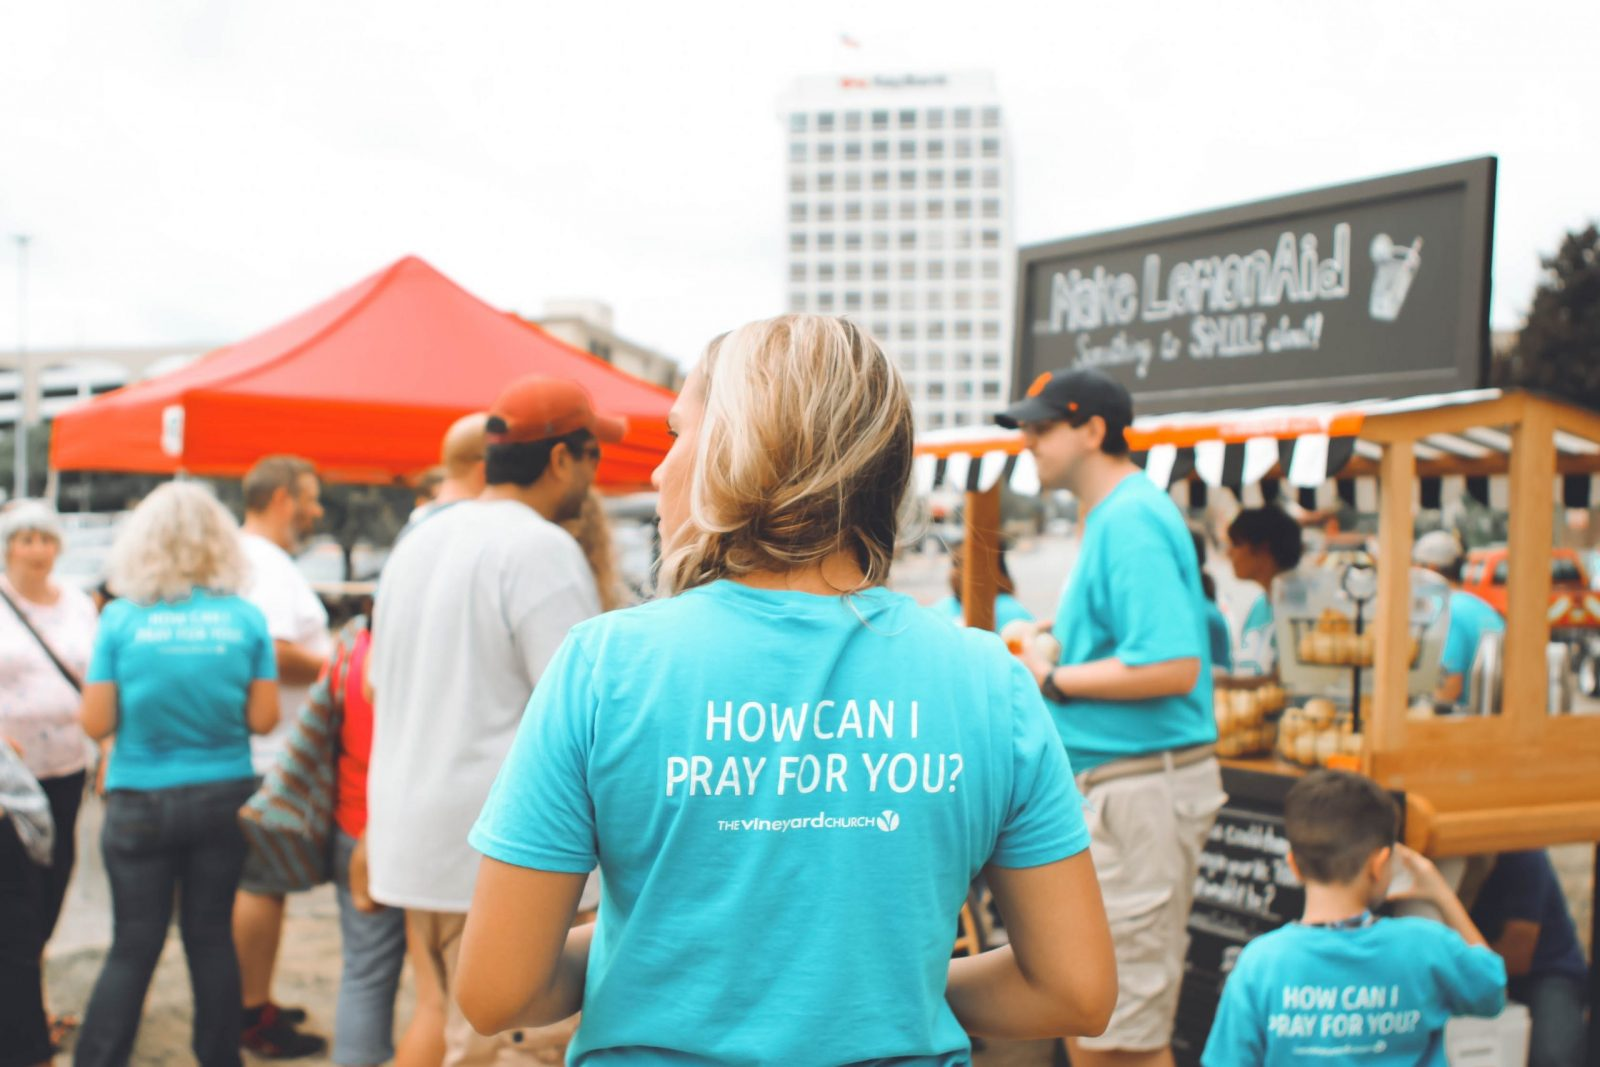 Church volunteer at an outdoor food market among a crowd of people